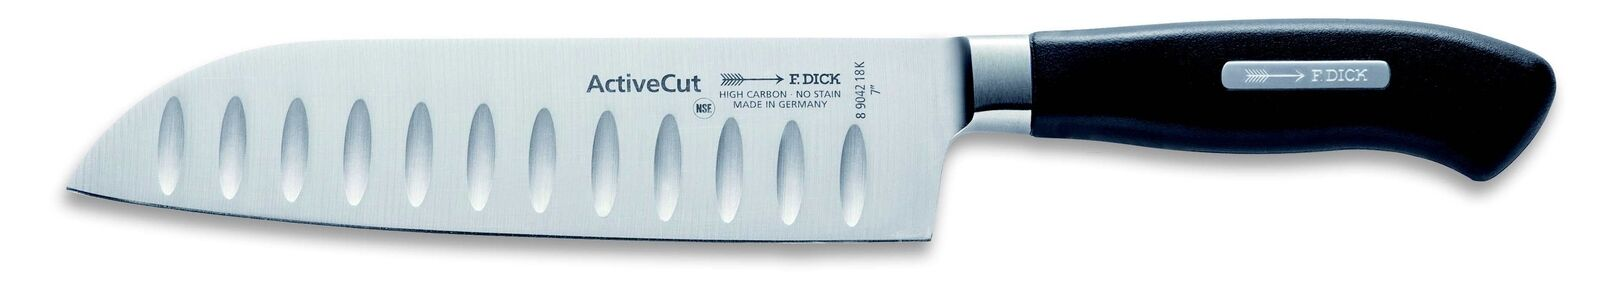 "F. Dick (8904218K) 7"" Santoku, Forged, Active Cut-cityfoodequipment.com"